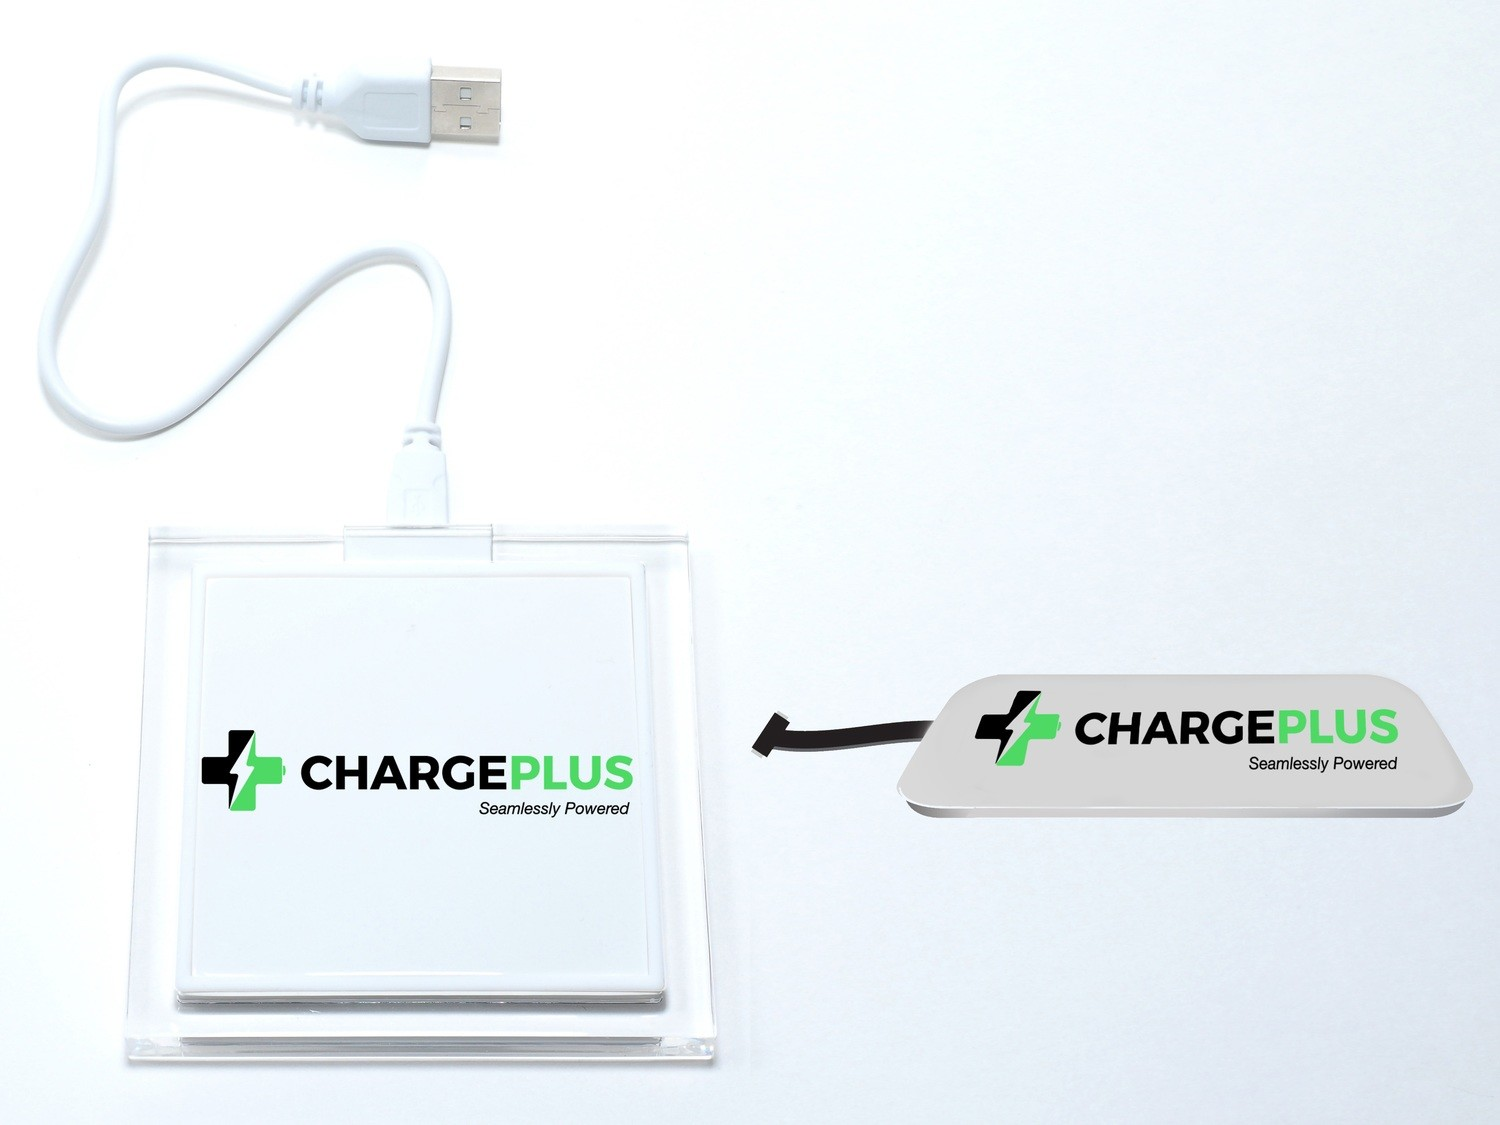 Wireless Charging Executive Bundle iPhone, Android